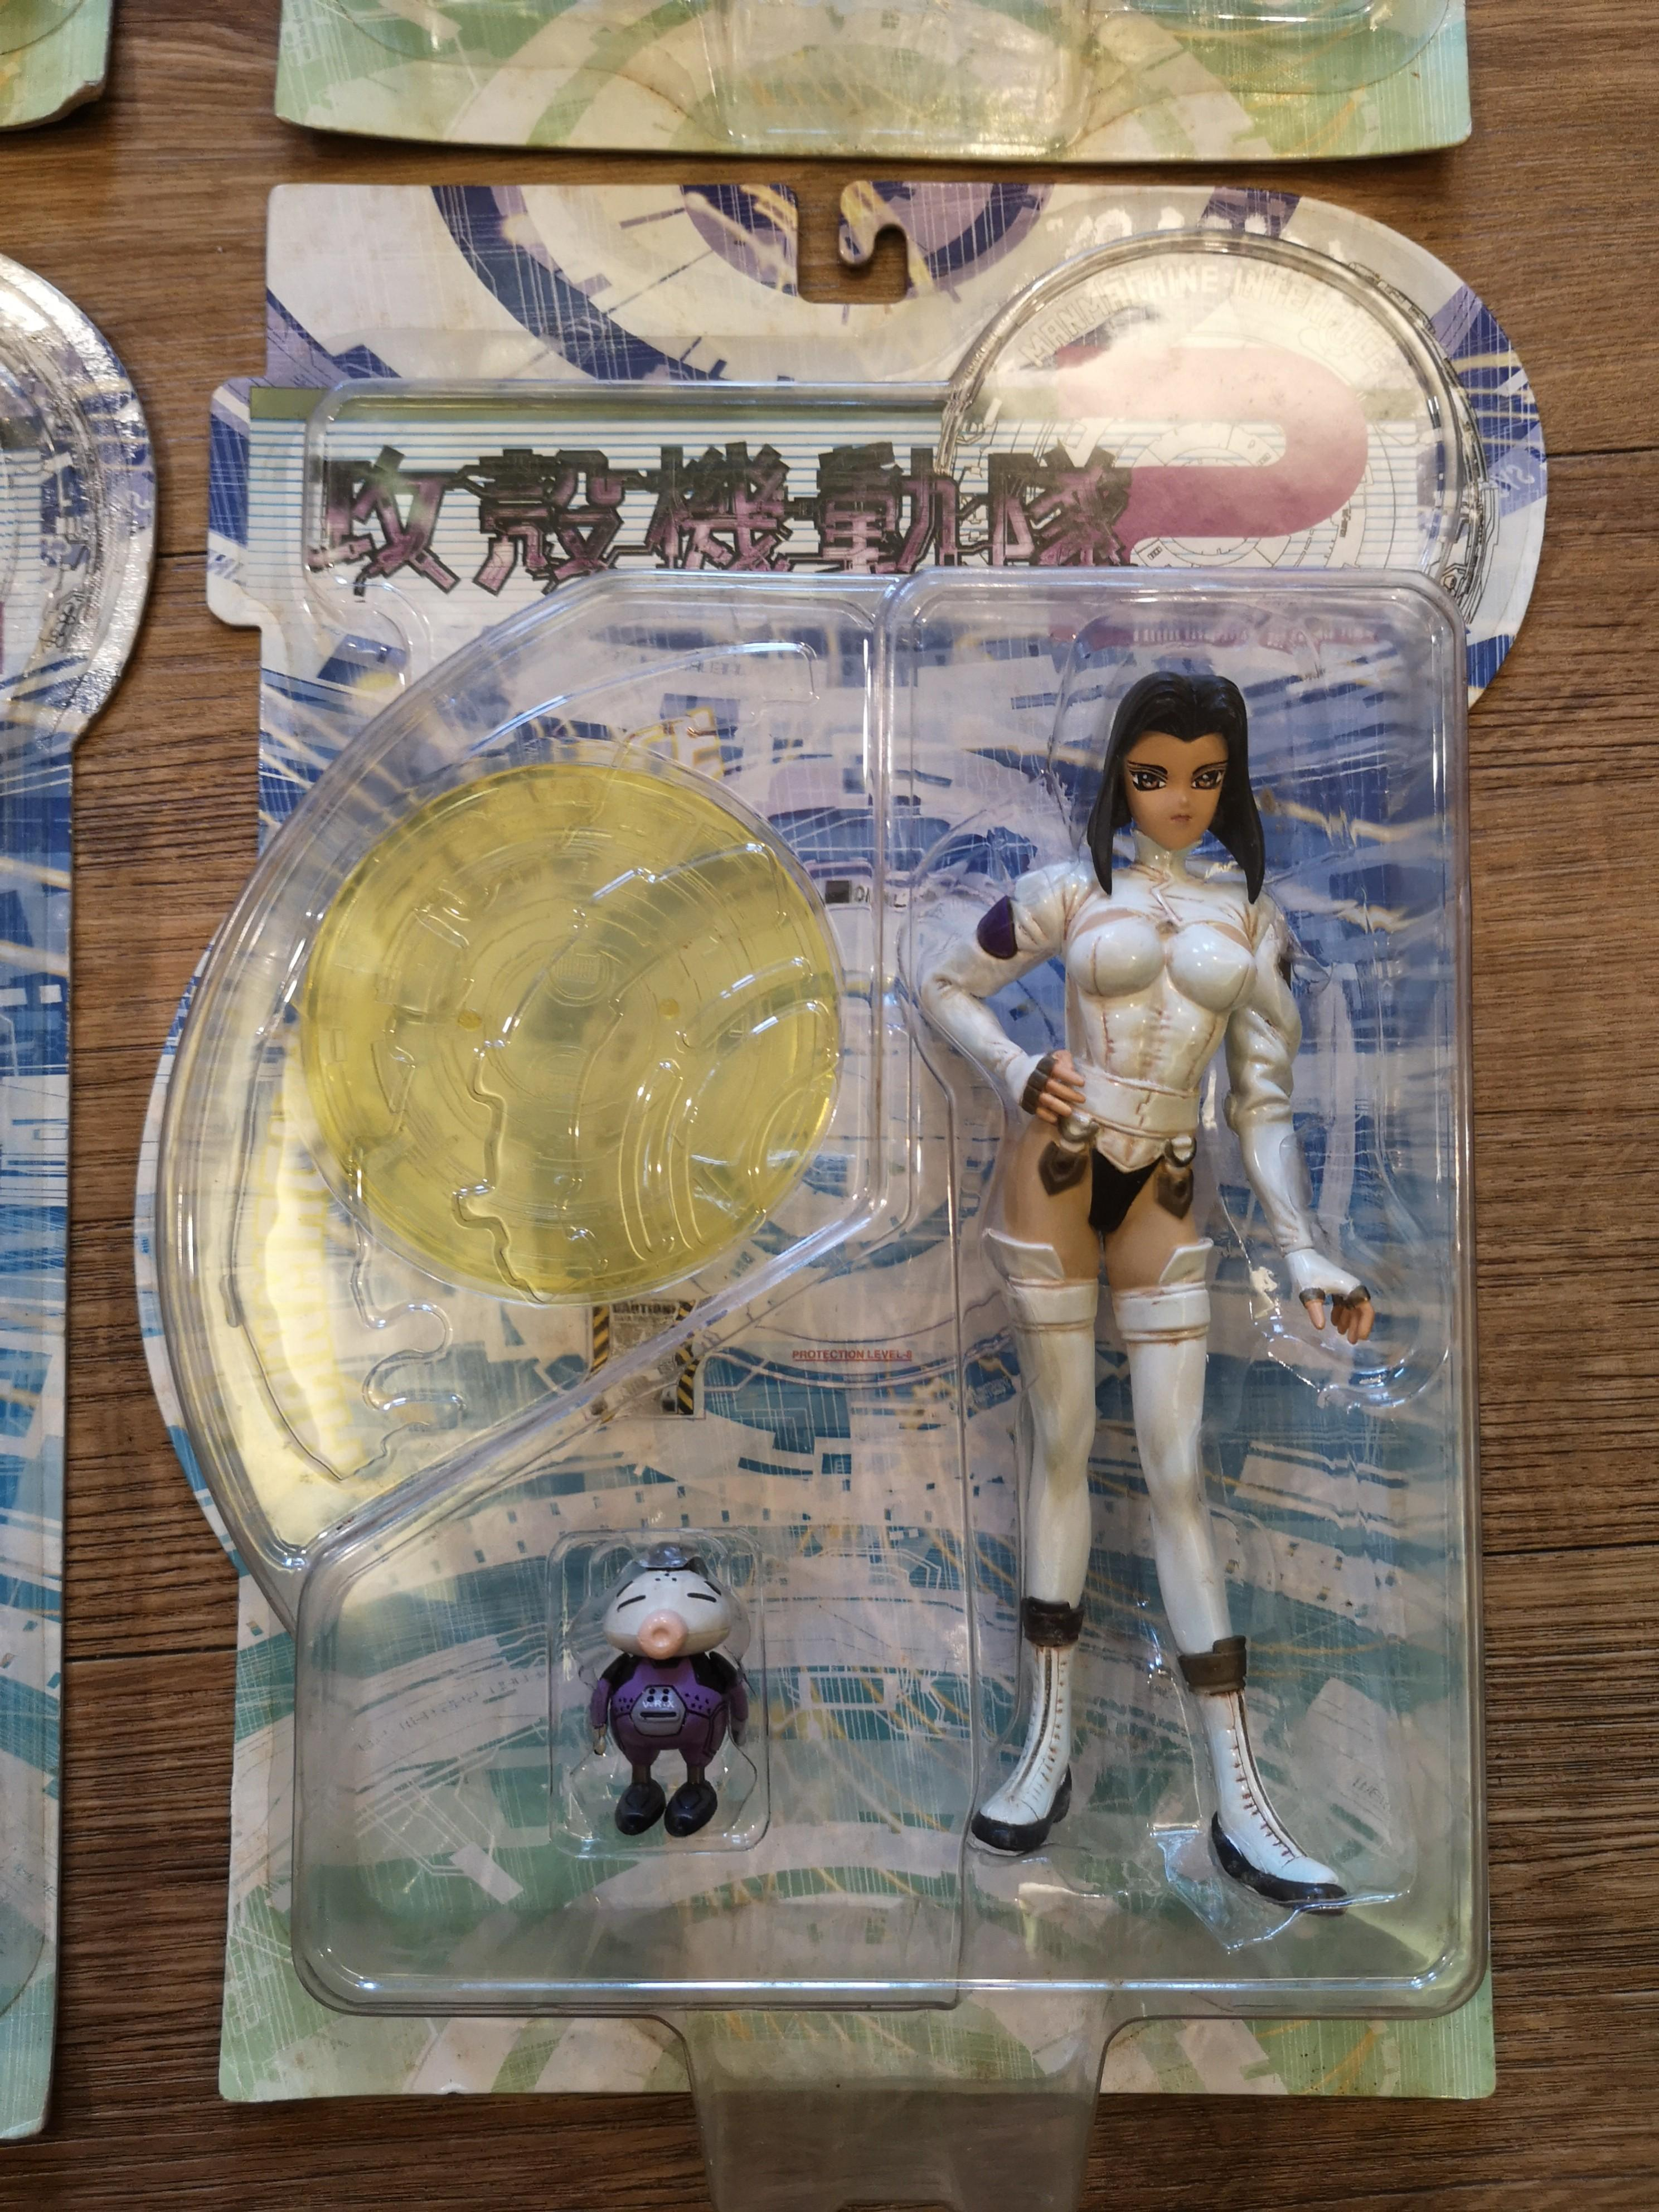 Yamato Alpha Ghost In The Shell 2 Manmachine Interface Motoko Aramaki White Suit Misb Carousellbelanja Toys Games Action Figures Collectibles On Carousell